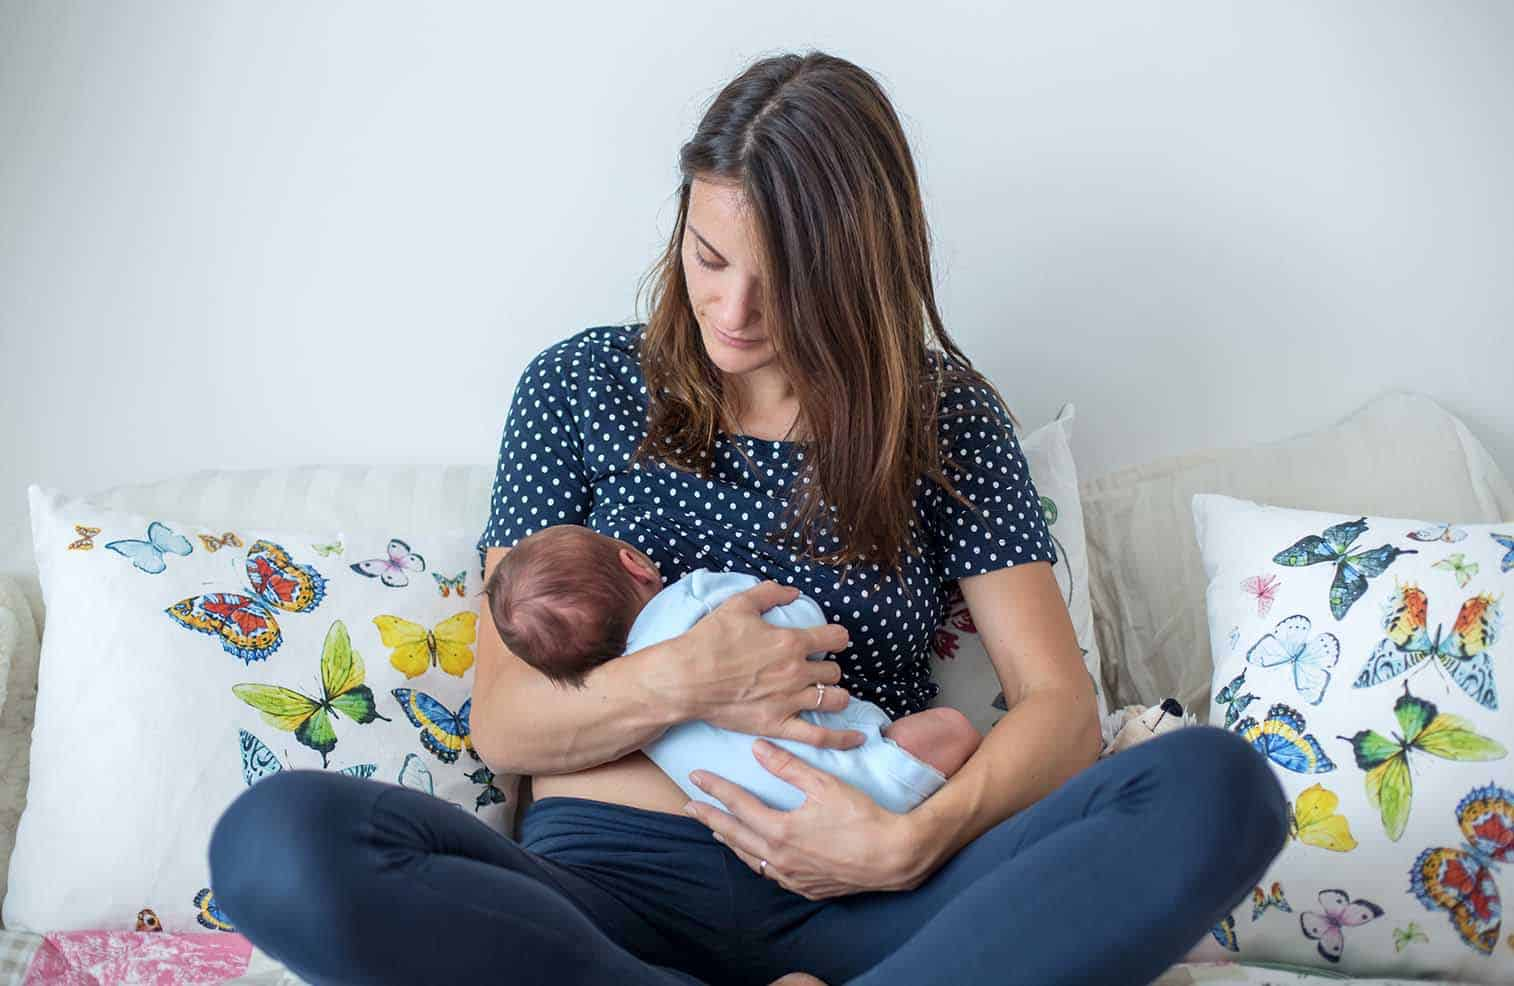 One of the biggest challenges with breastfeeding can be when you need to breastfeed in public. It can be awkward, but here's you can do it with confidence and know you can feed your baby whenever and wherever you need.